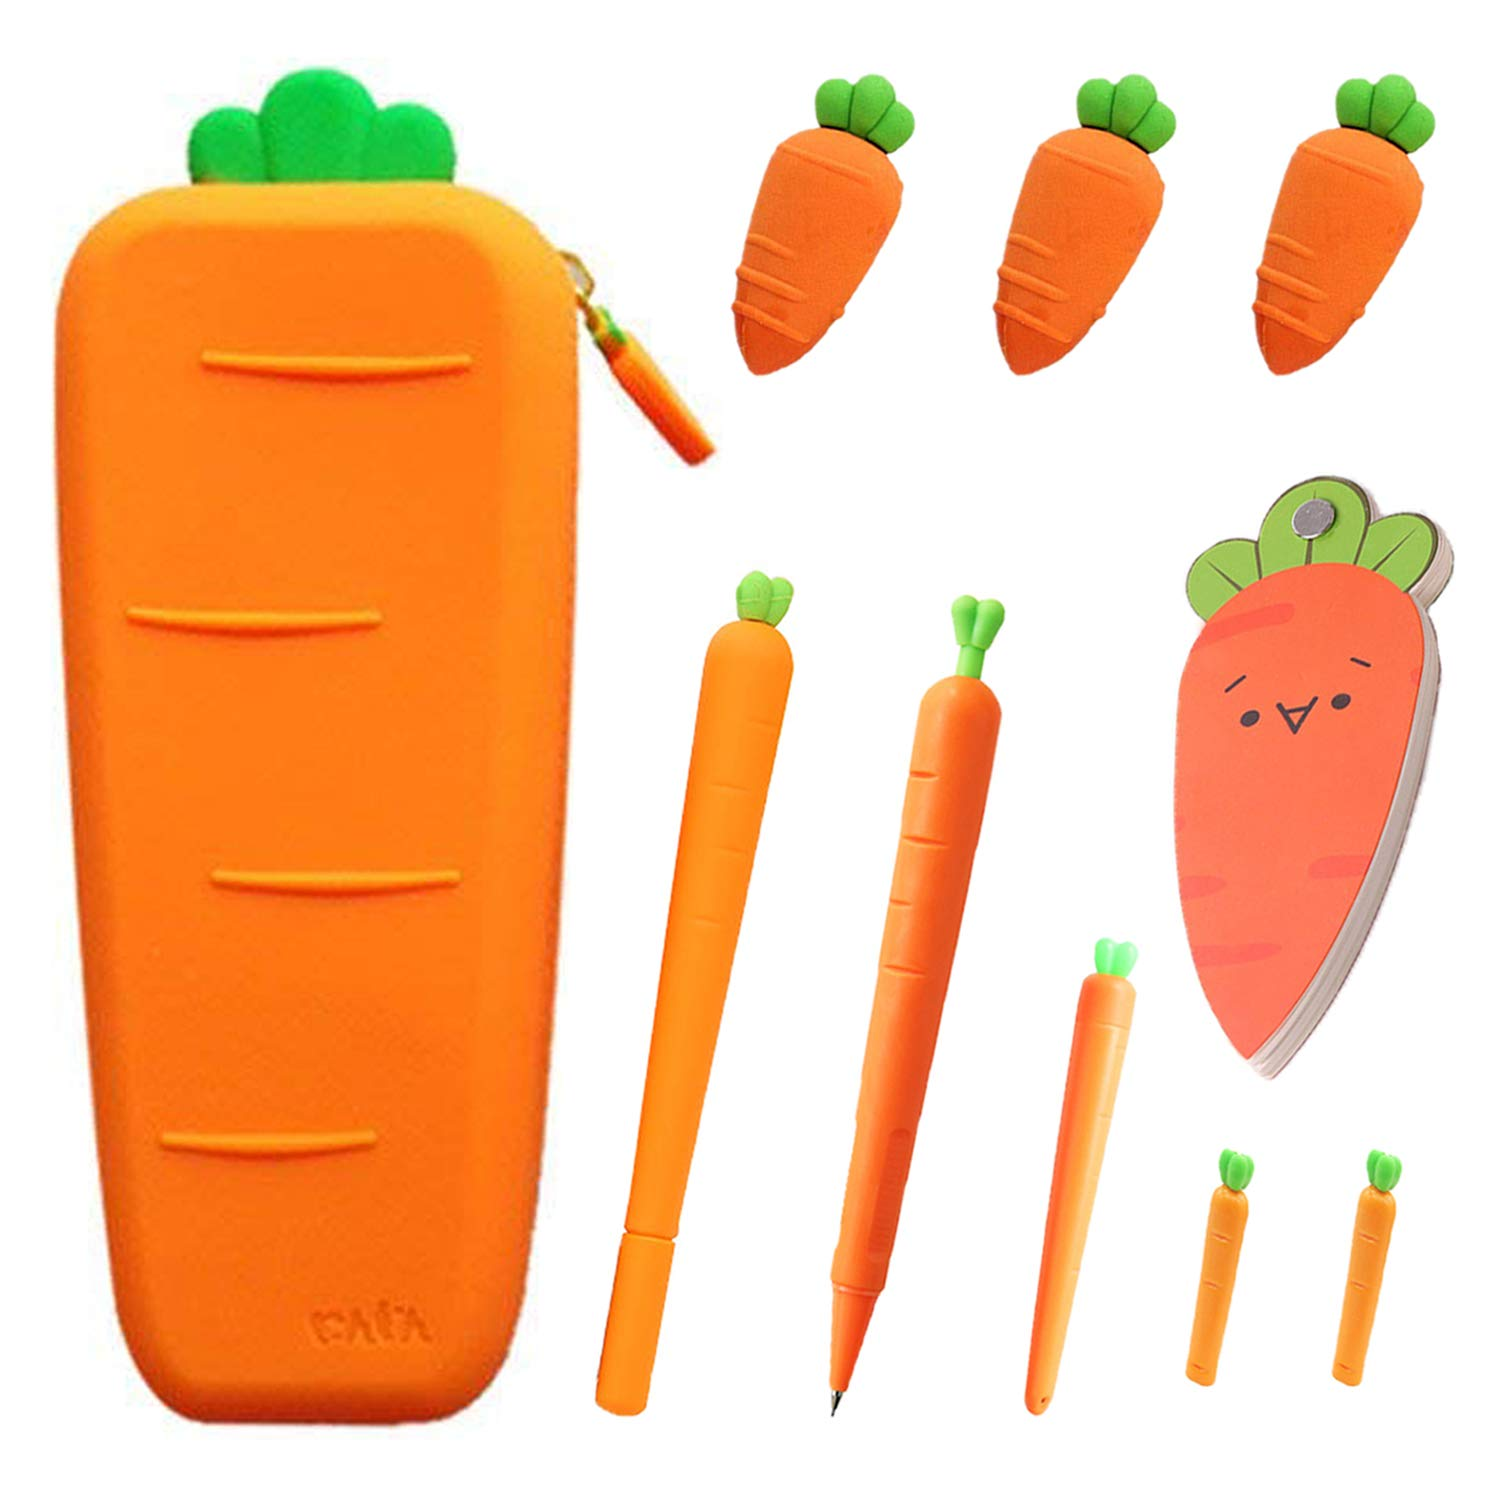 Cute Carrot Pencil Case Set - Pack of 10pcs,Large Capacity Soft Silicone Carrot Pen Pouch,Gel Ink Pen,Mechanical Pencil,Eraser,Lead Refills for Cute School Supplies/Stationery Kids Students Waterproof by XYVIMILDY